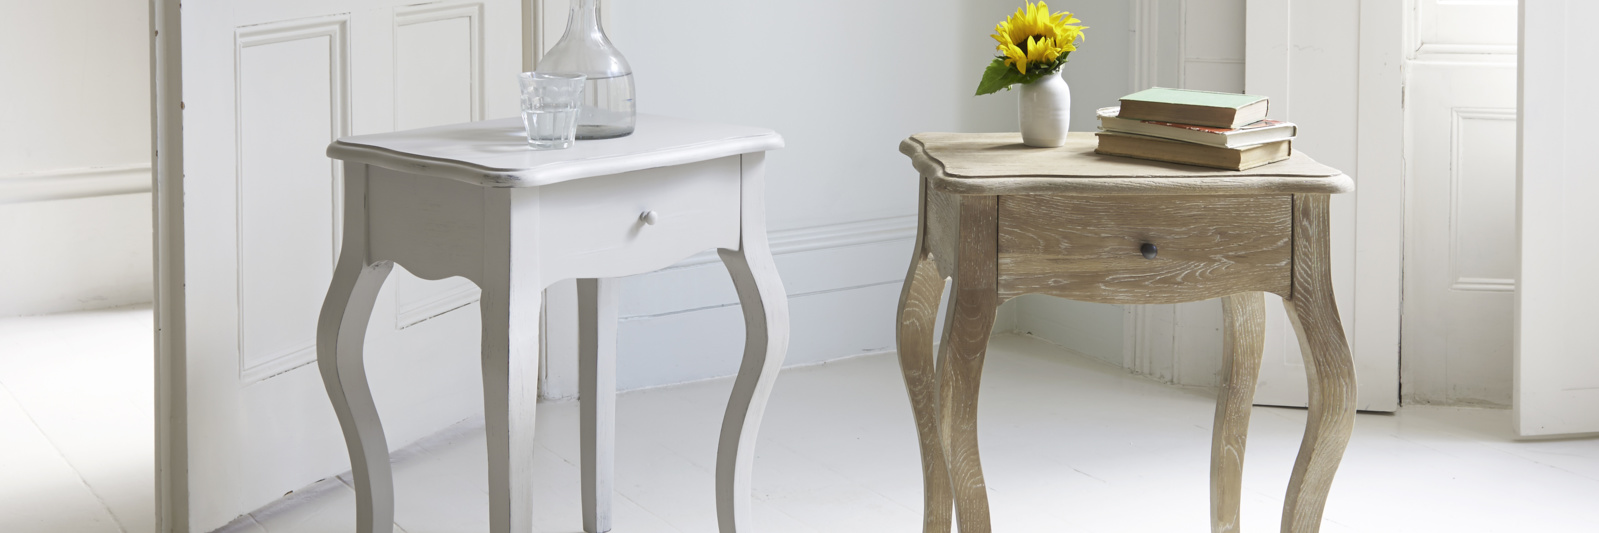 French style wooden oak bedside tables